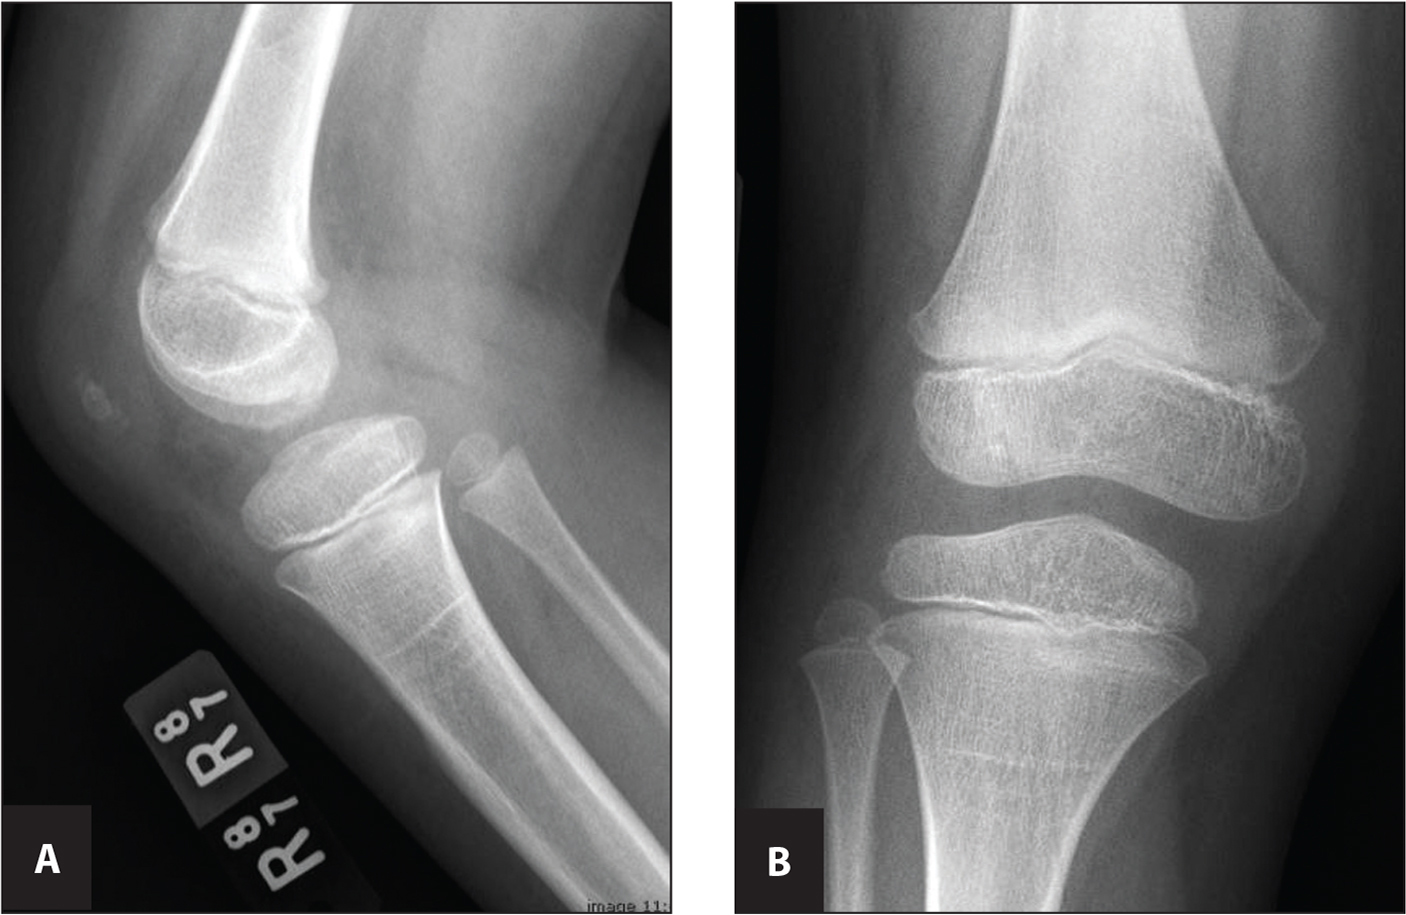 (A) Anterior/posterior radiograph and (B) lateral radiograph of the right knee.